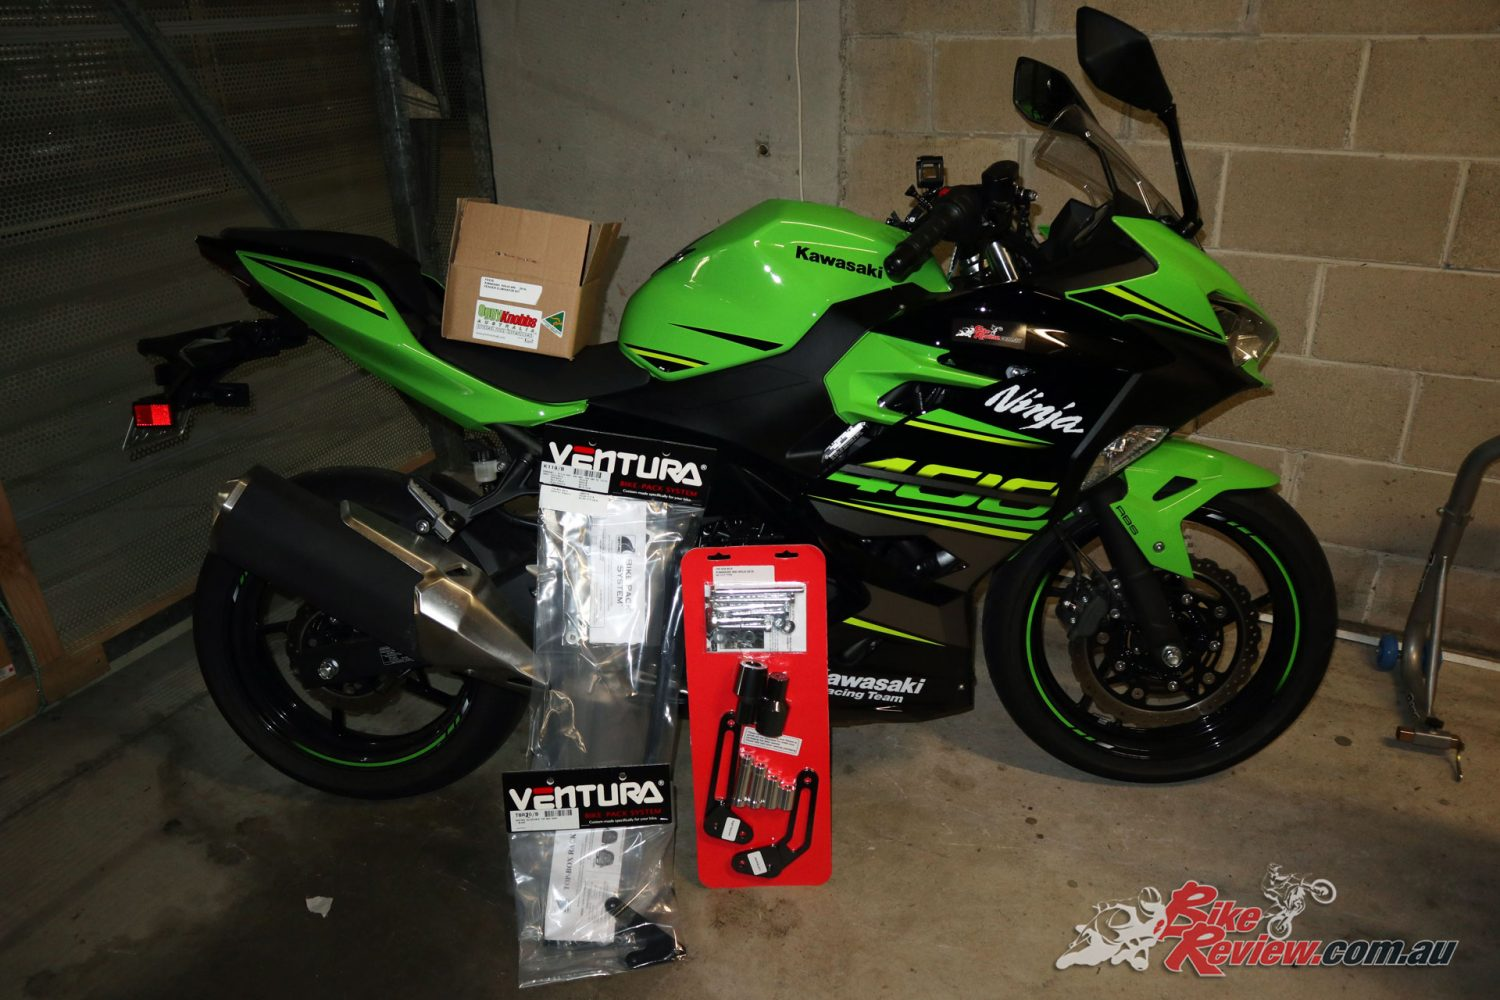 We've had a bunch of accessories arrive from Kenma Australia for our Long Term Ninja 400!